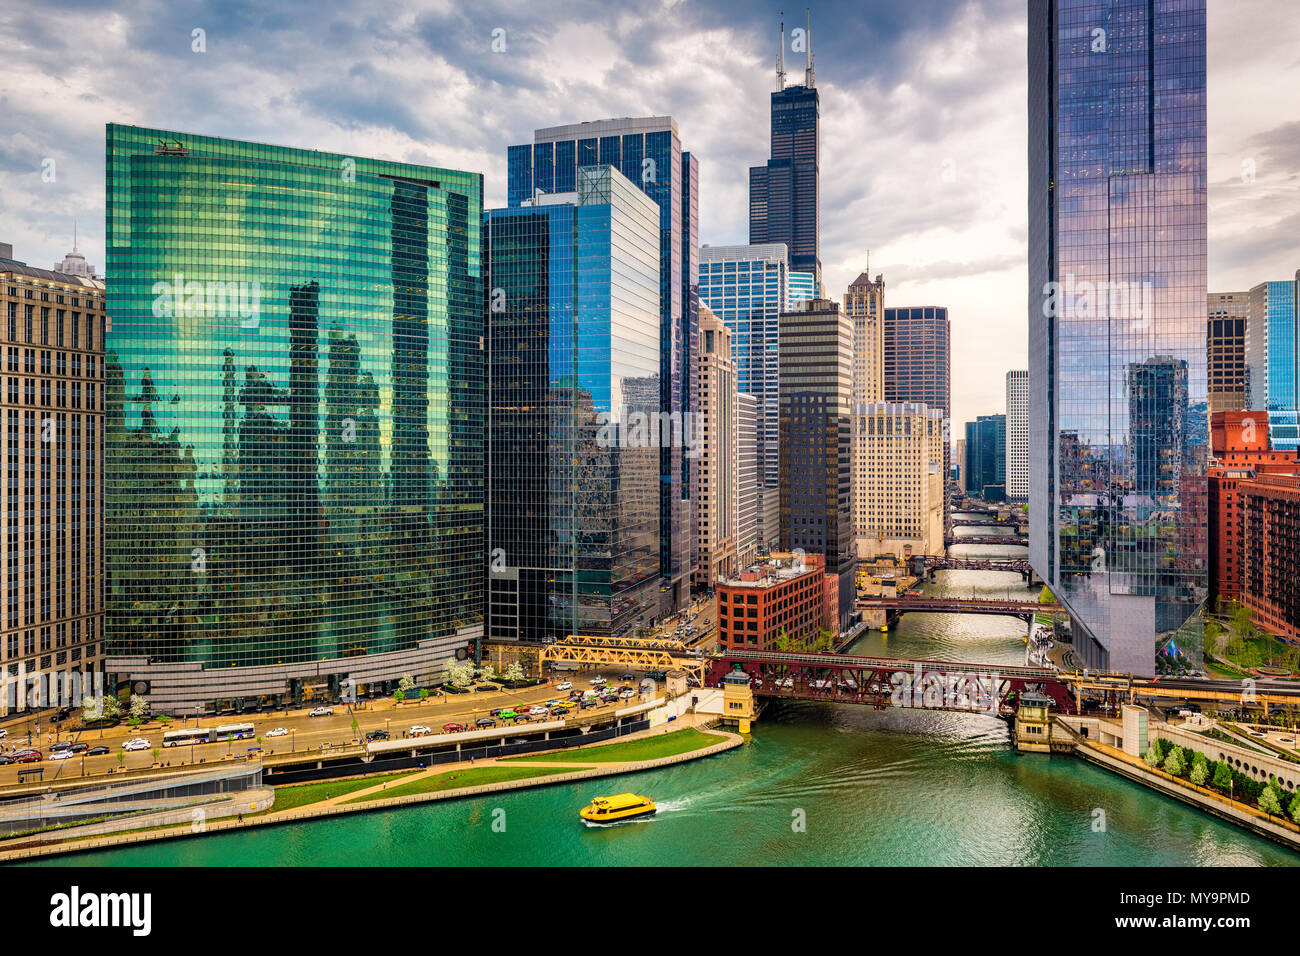 Chicago, Illinois, USA cityscape over the river at twilight. - Stock Image